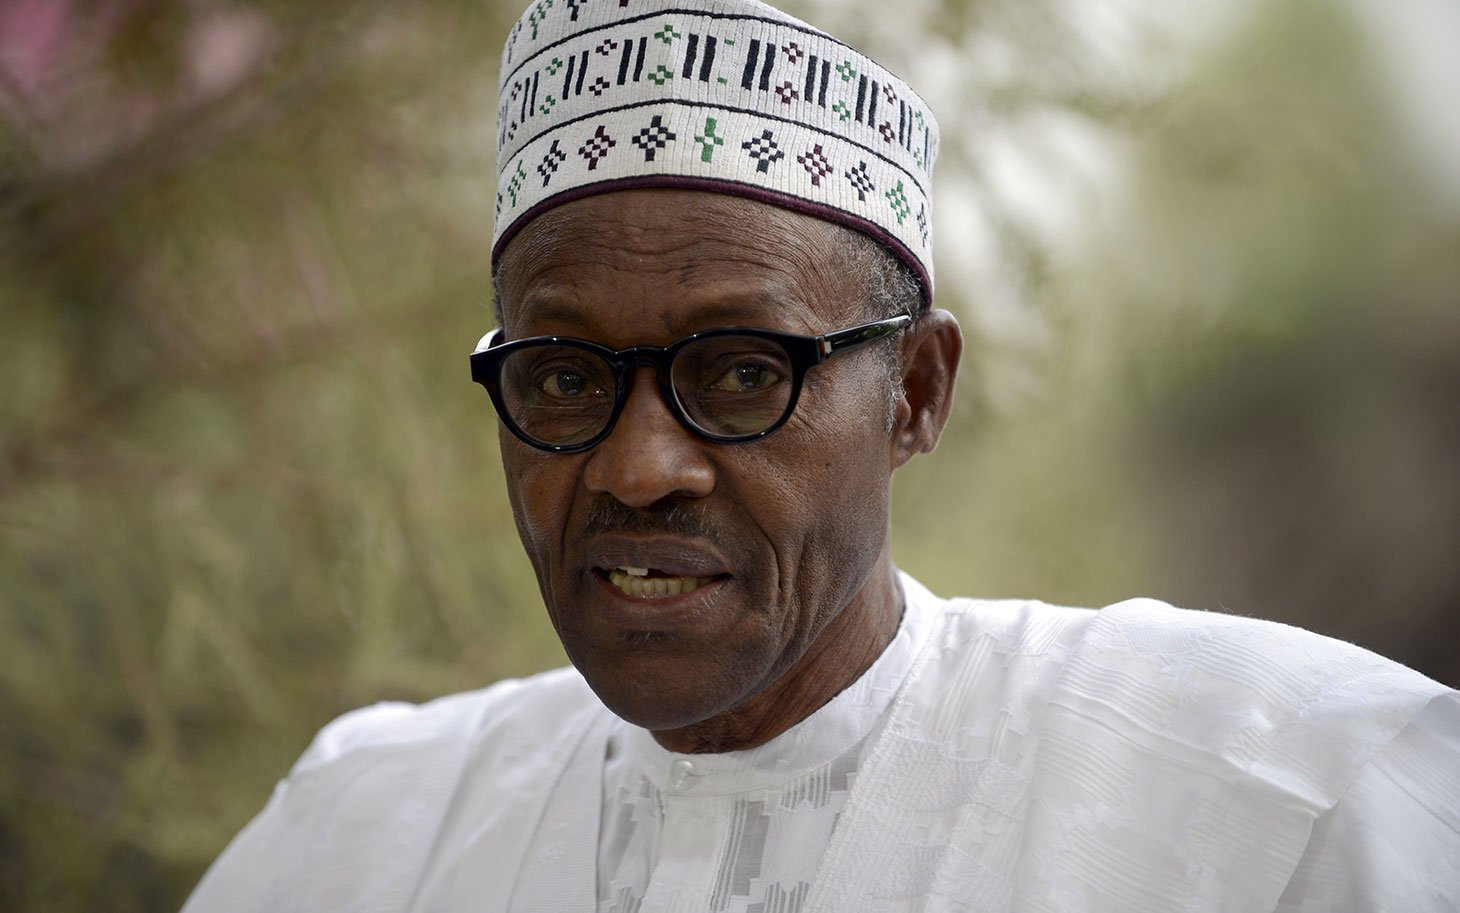 Katsina state government holds special prayers for President Buhari